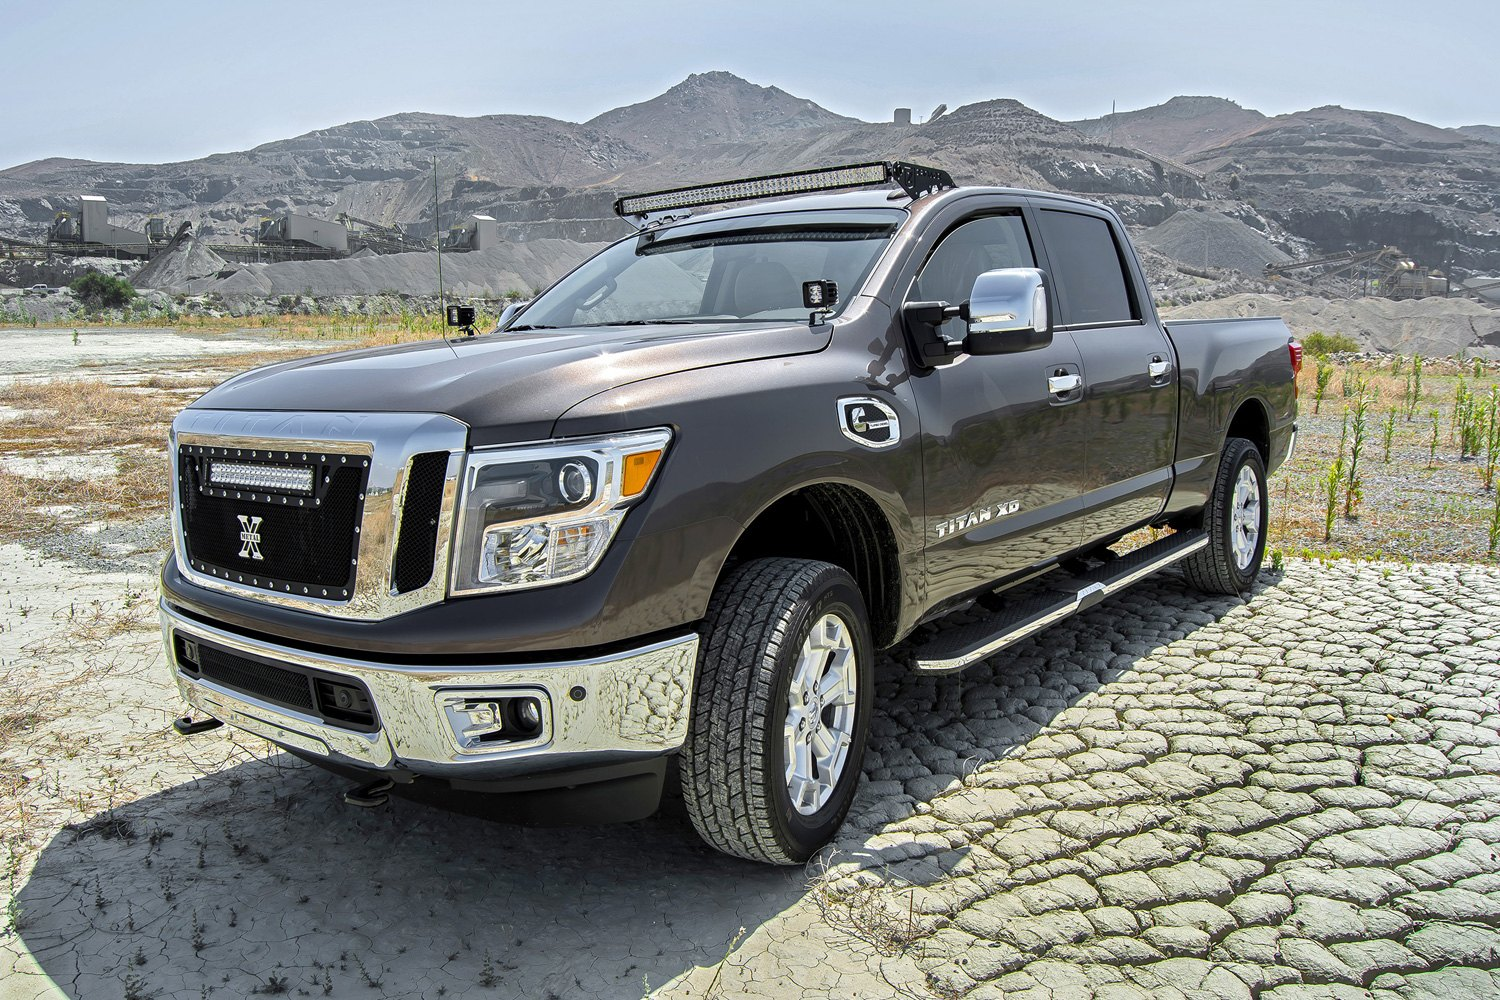 Zroadz nissan titan xd 2016 2017 roof mounts for 50 curved led roof mounts for 50 curved led light barzroadz aloadofball Image collections